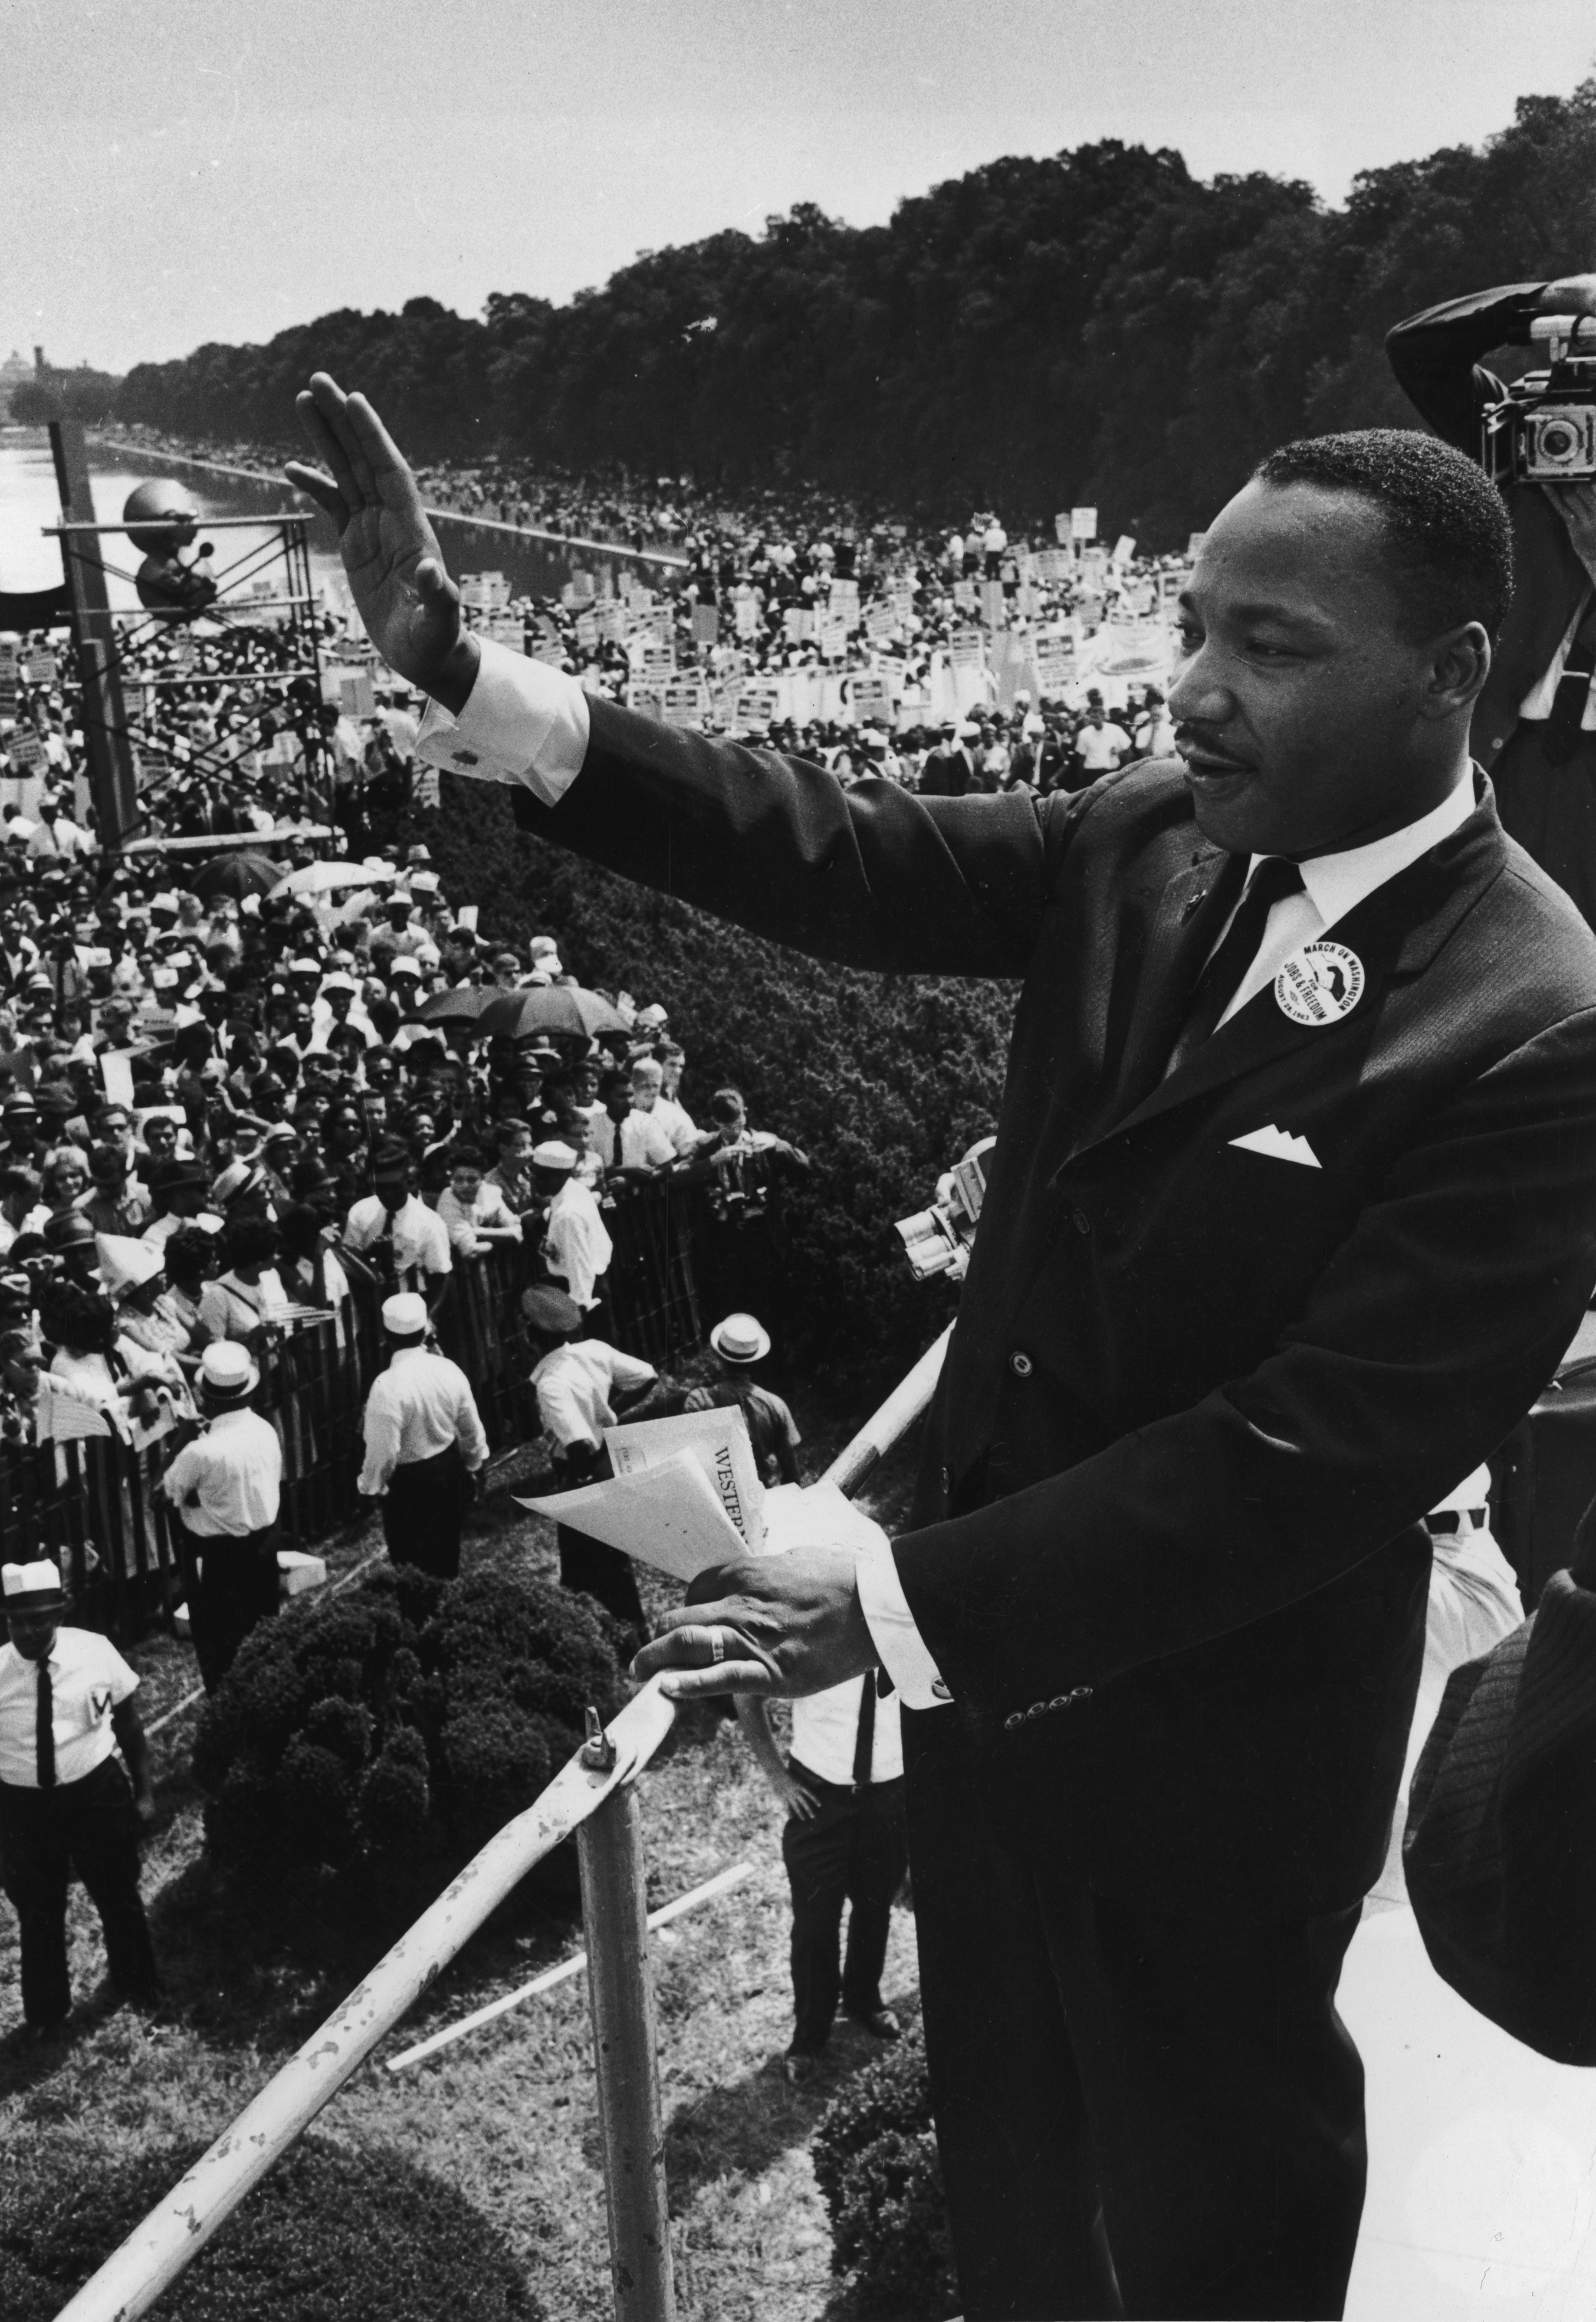 MLK Day encourages service